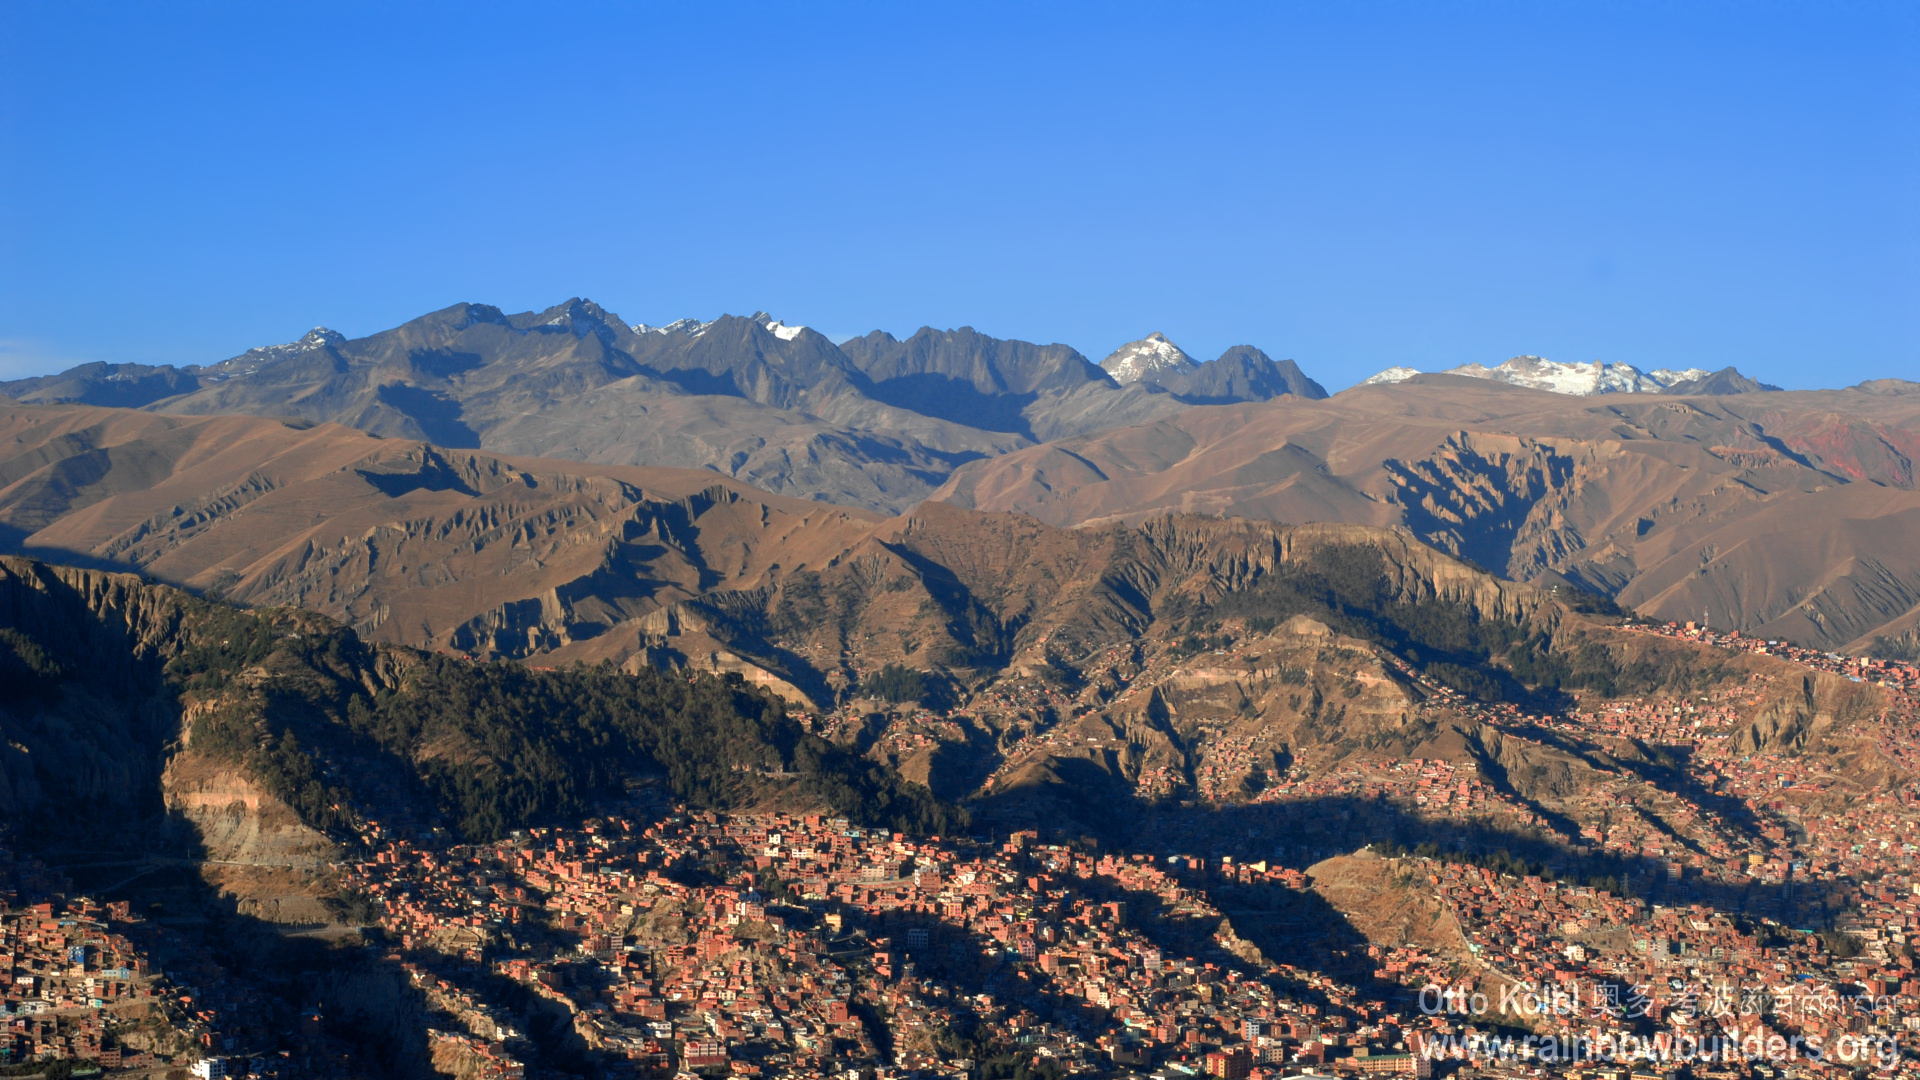 La Paz, the capital city of Bolivia, is surrounded by barren hills and high mountains. These houses are at an altitude of more than 3800 meters above sea level.